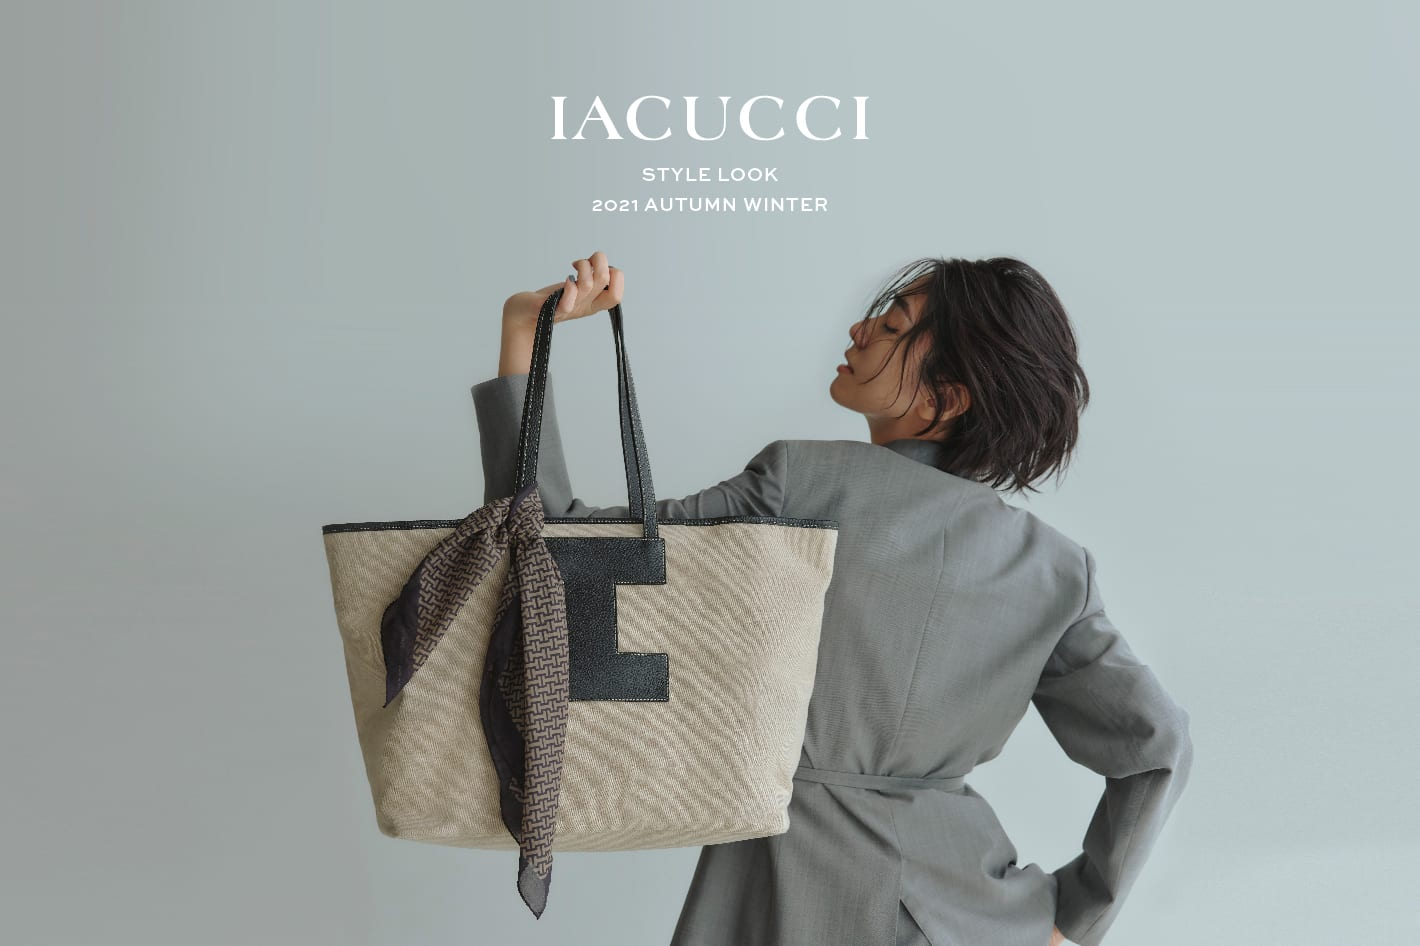 IACUCCI 2021 AUTUMN/WINTER COLLECTION STYLE LOOK